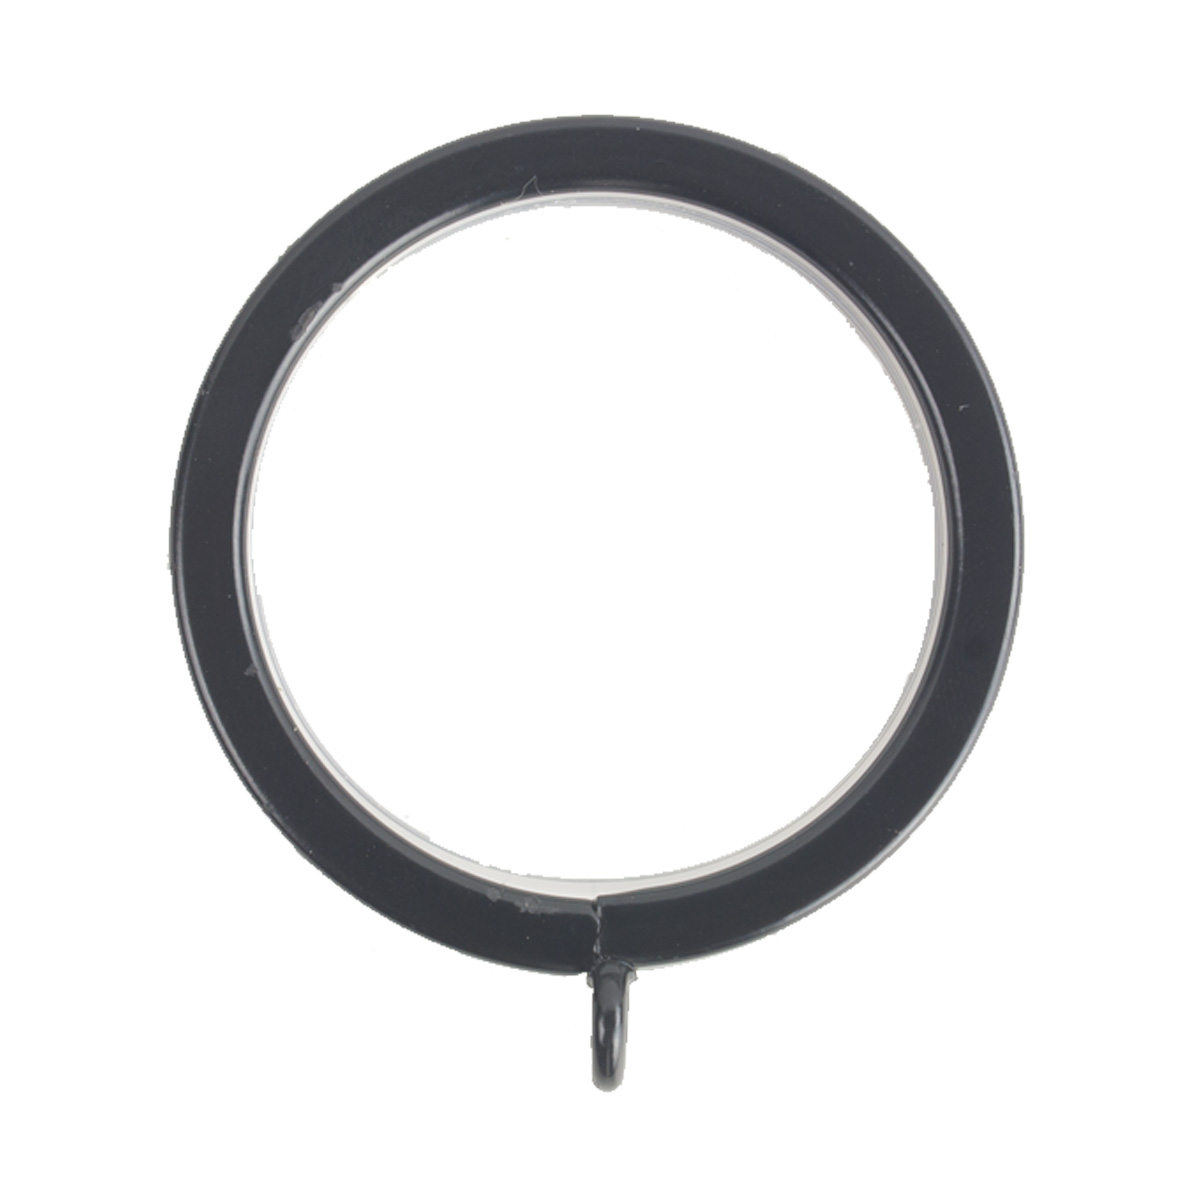 Flat Lined Rings 1 Black (10 Per Pack)